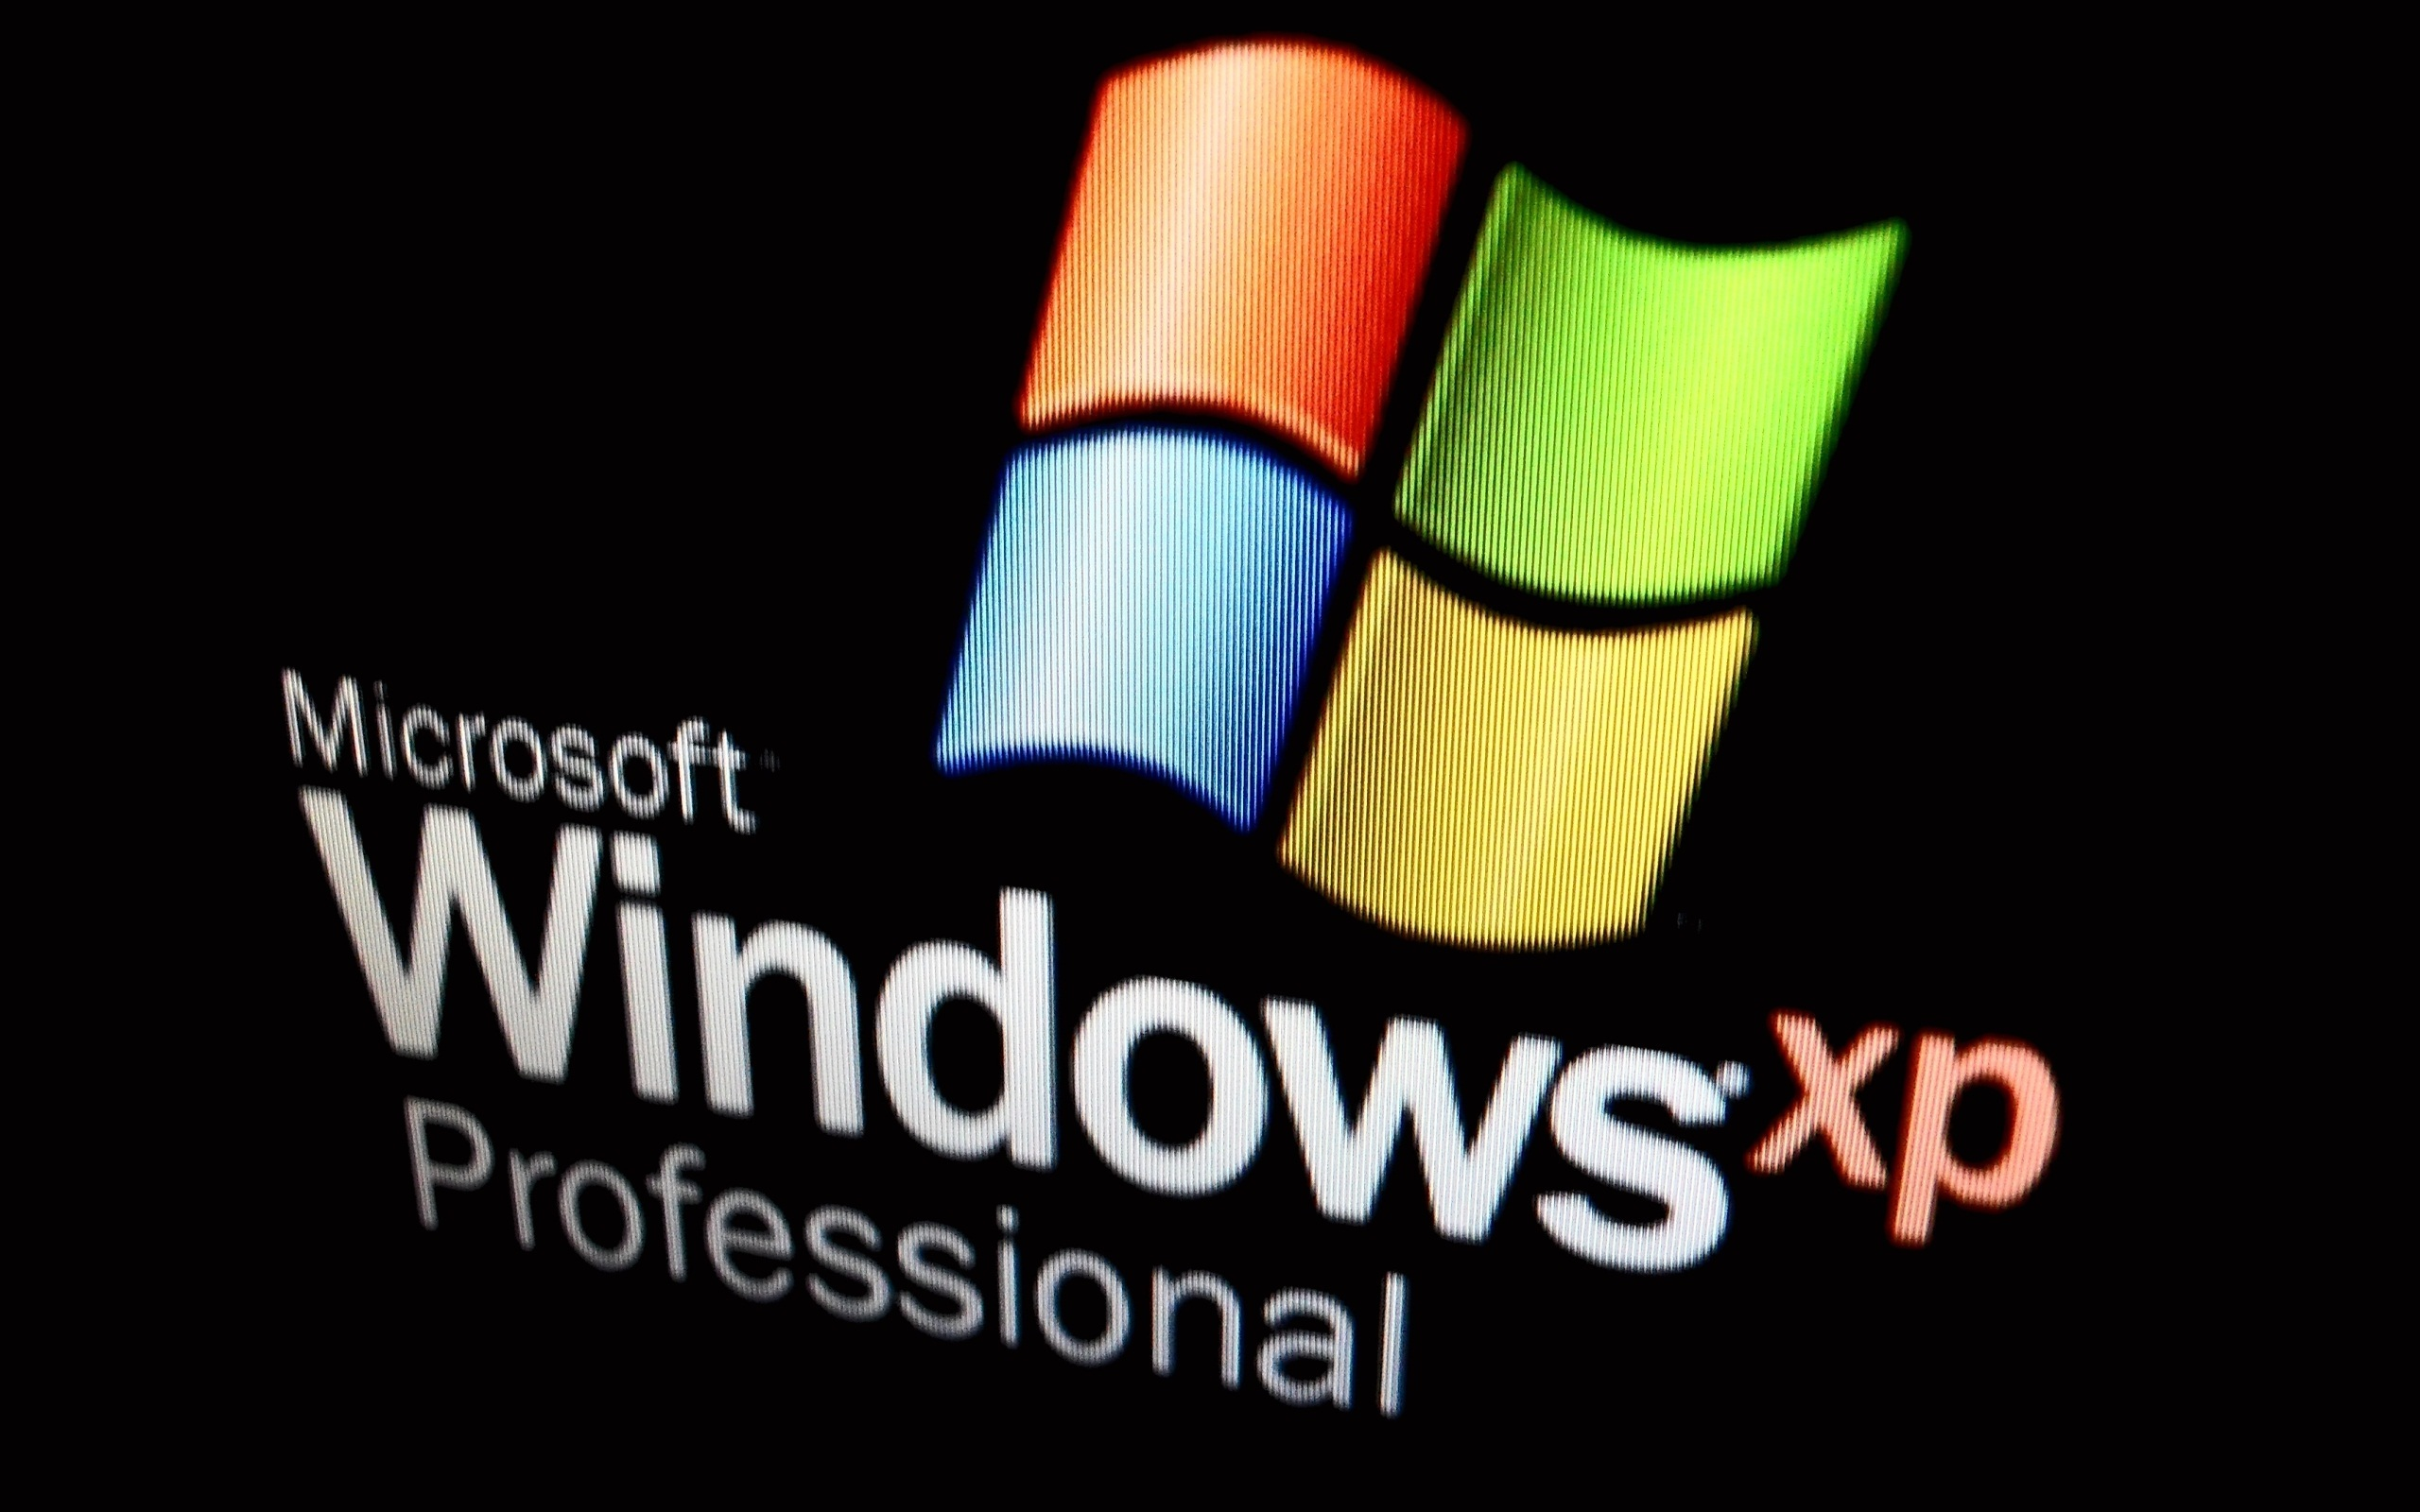 windows-xp-wallpaper-download-20